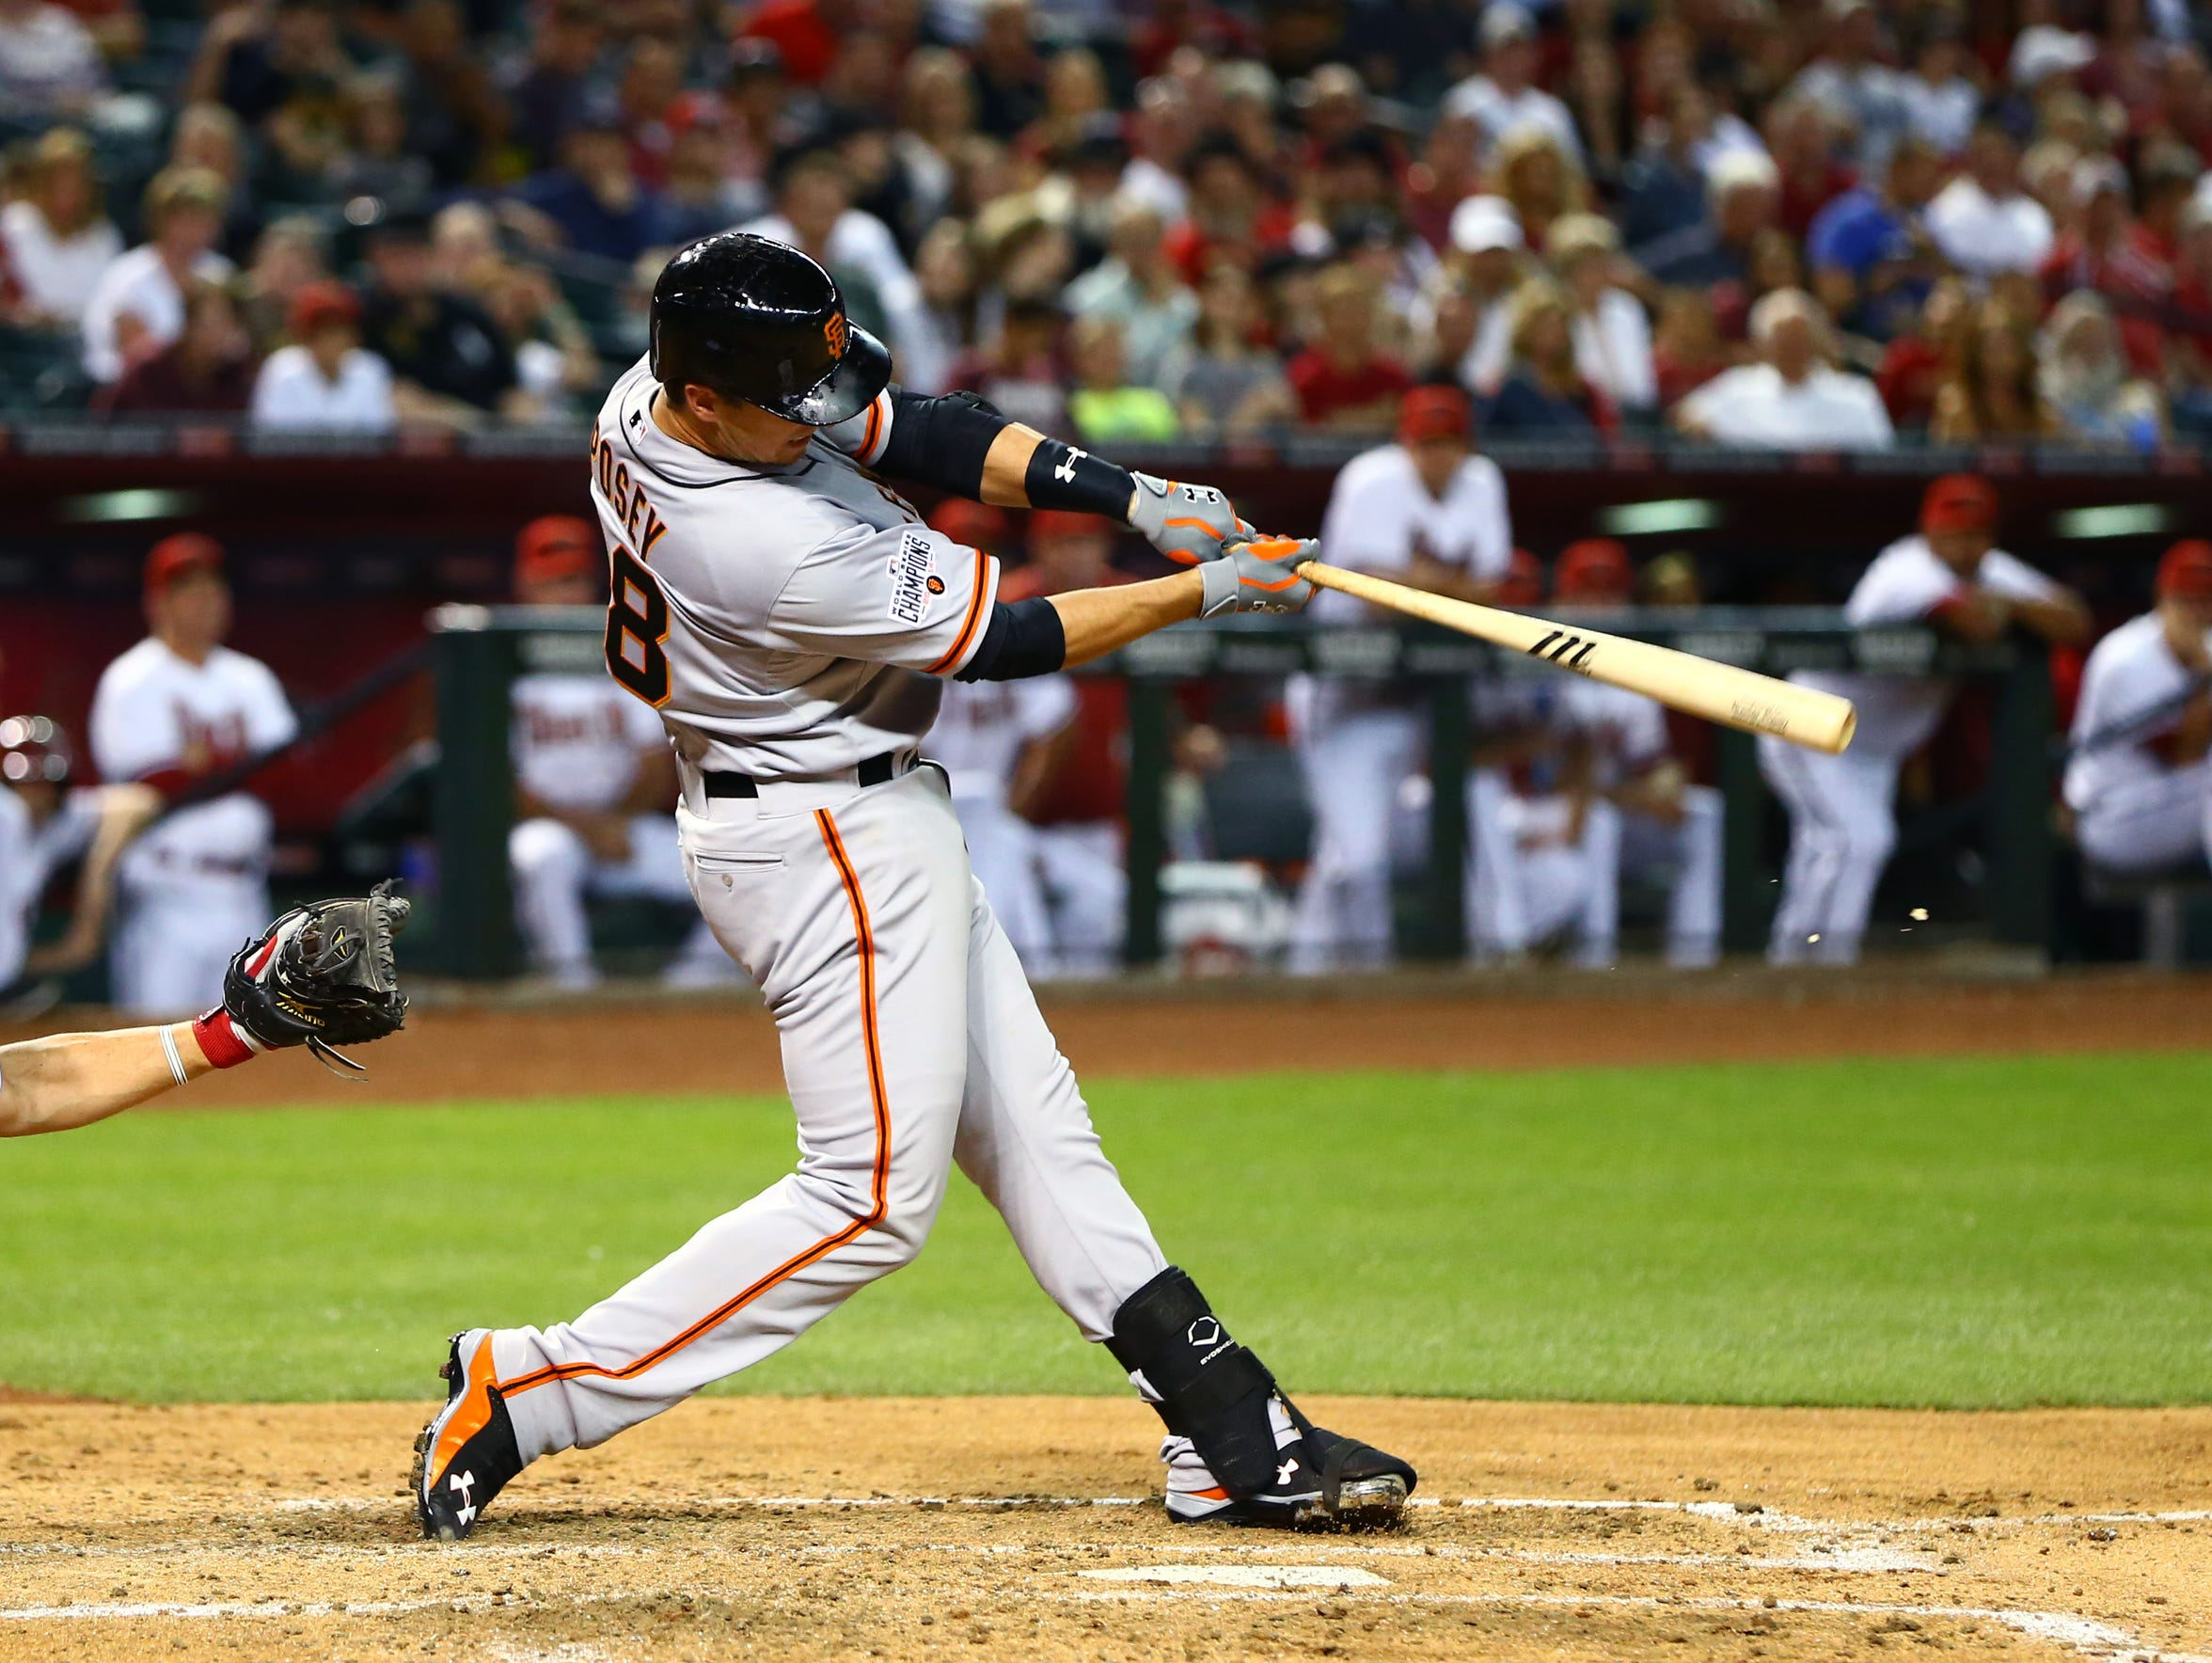 Posey finished fourth in the NL in batting average